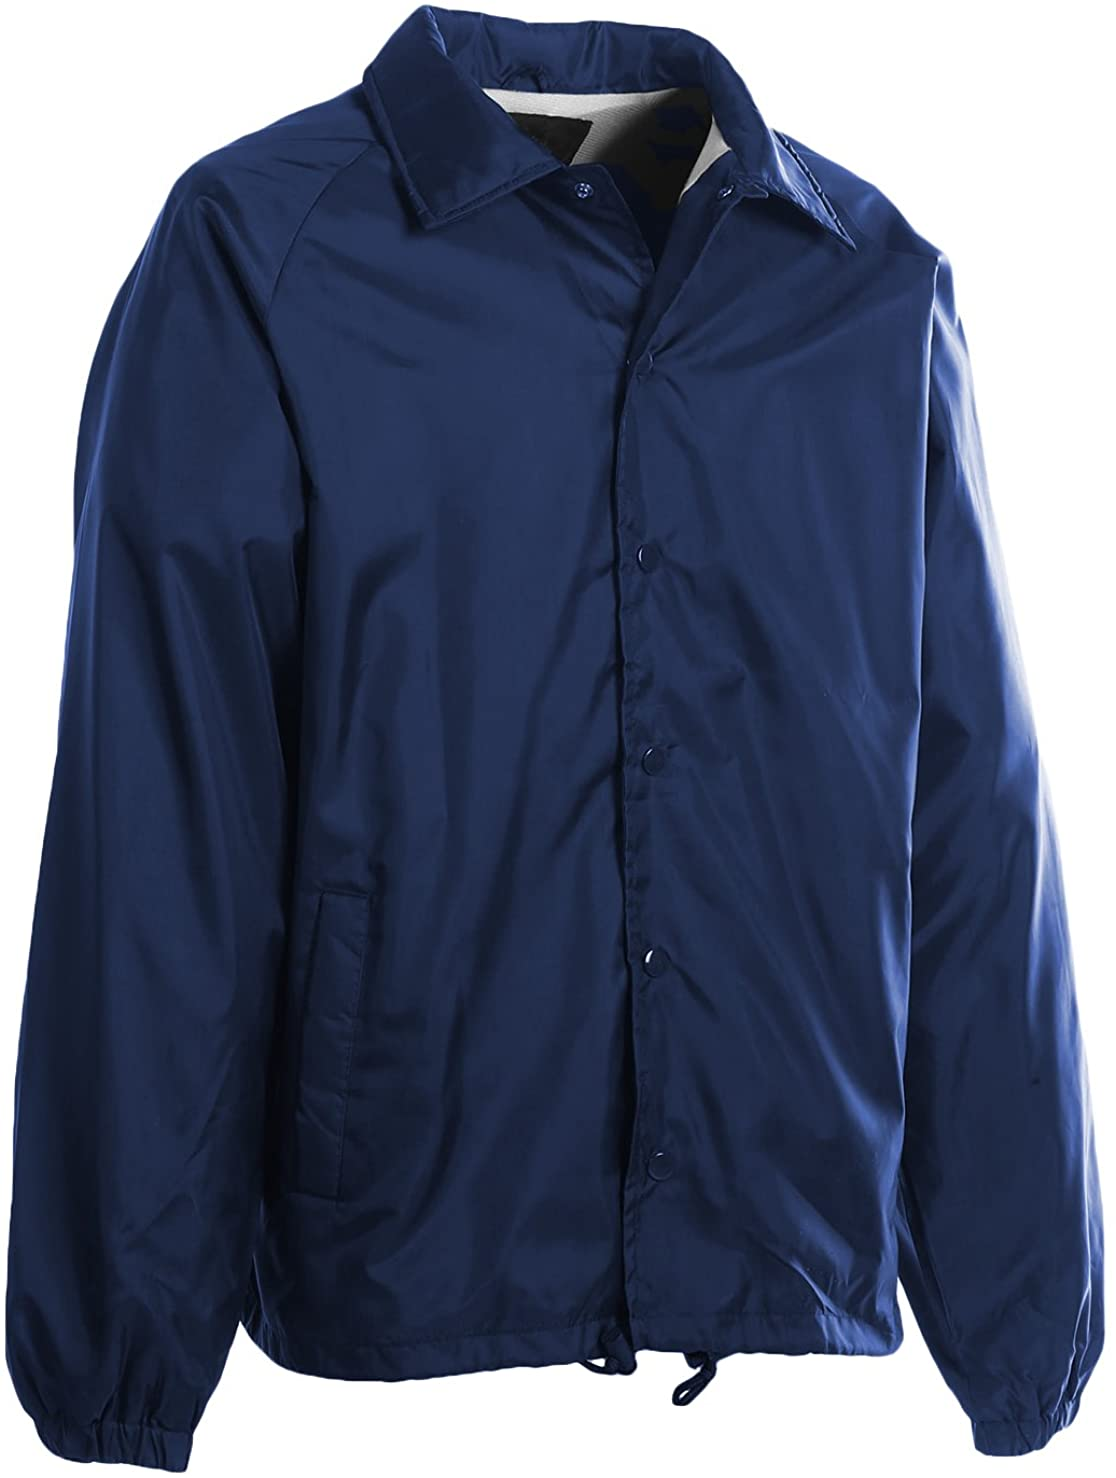 First Class 100/% Nylon Windbreaker